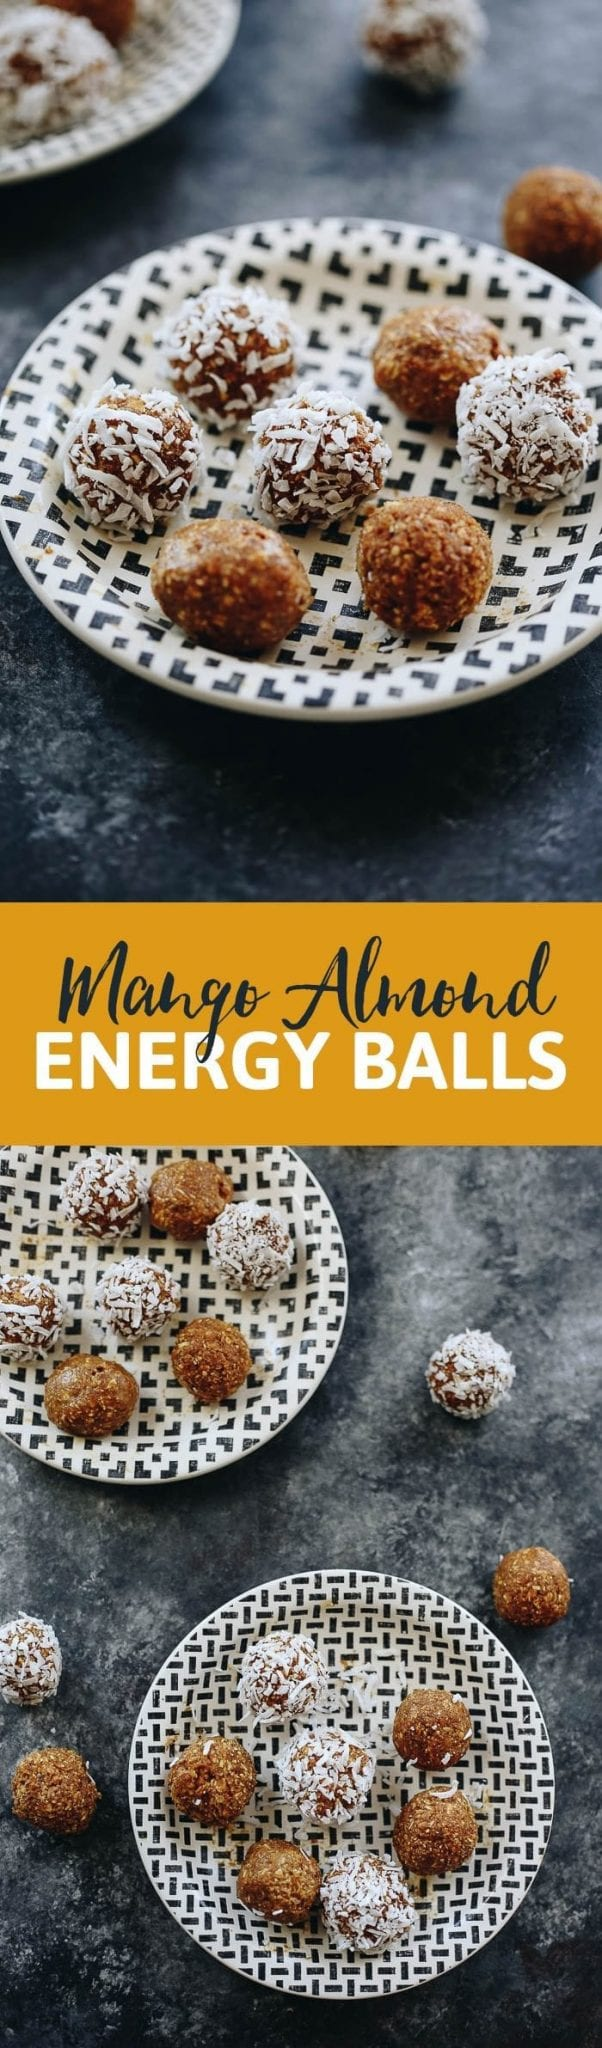 3 ingredients are all you need to whip up these Mango Almond Energy Balls! No sugar added, just natural fruit, and healthy fats from almond butter. This will become your new favorite energy ball recipe!